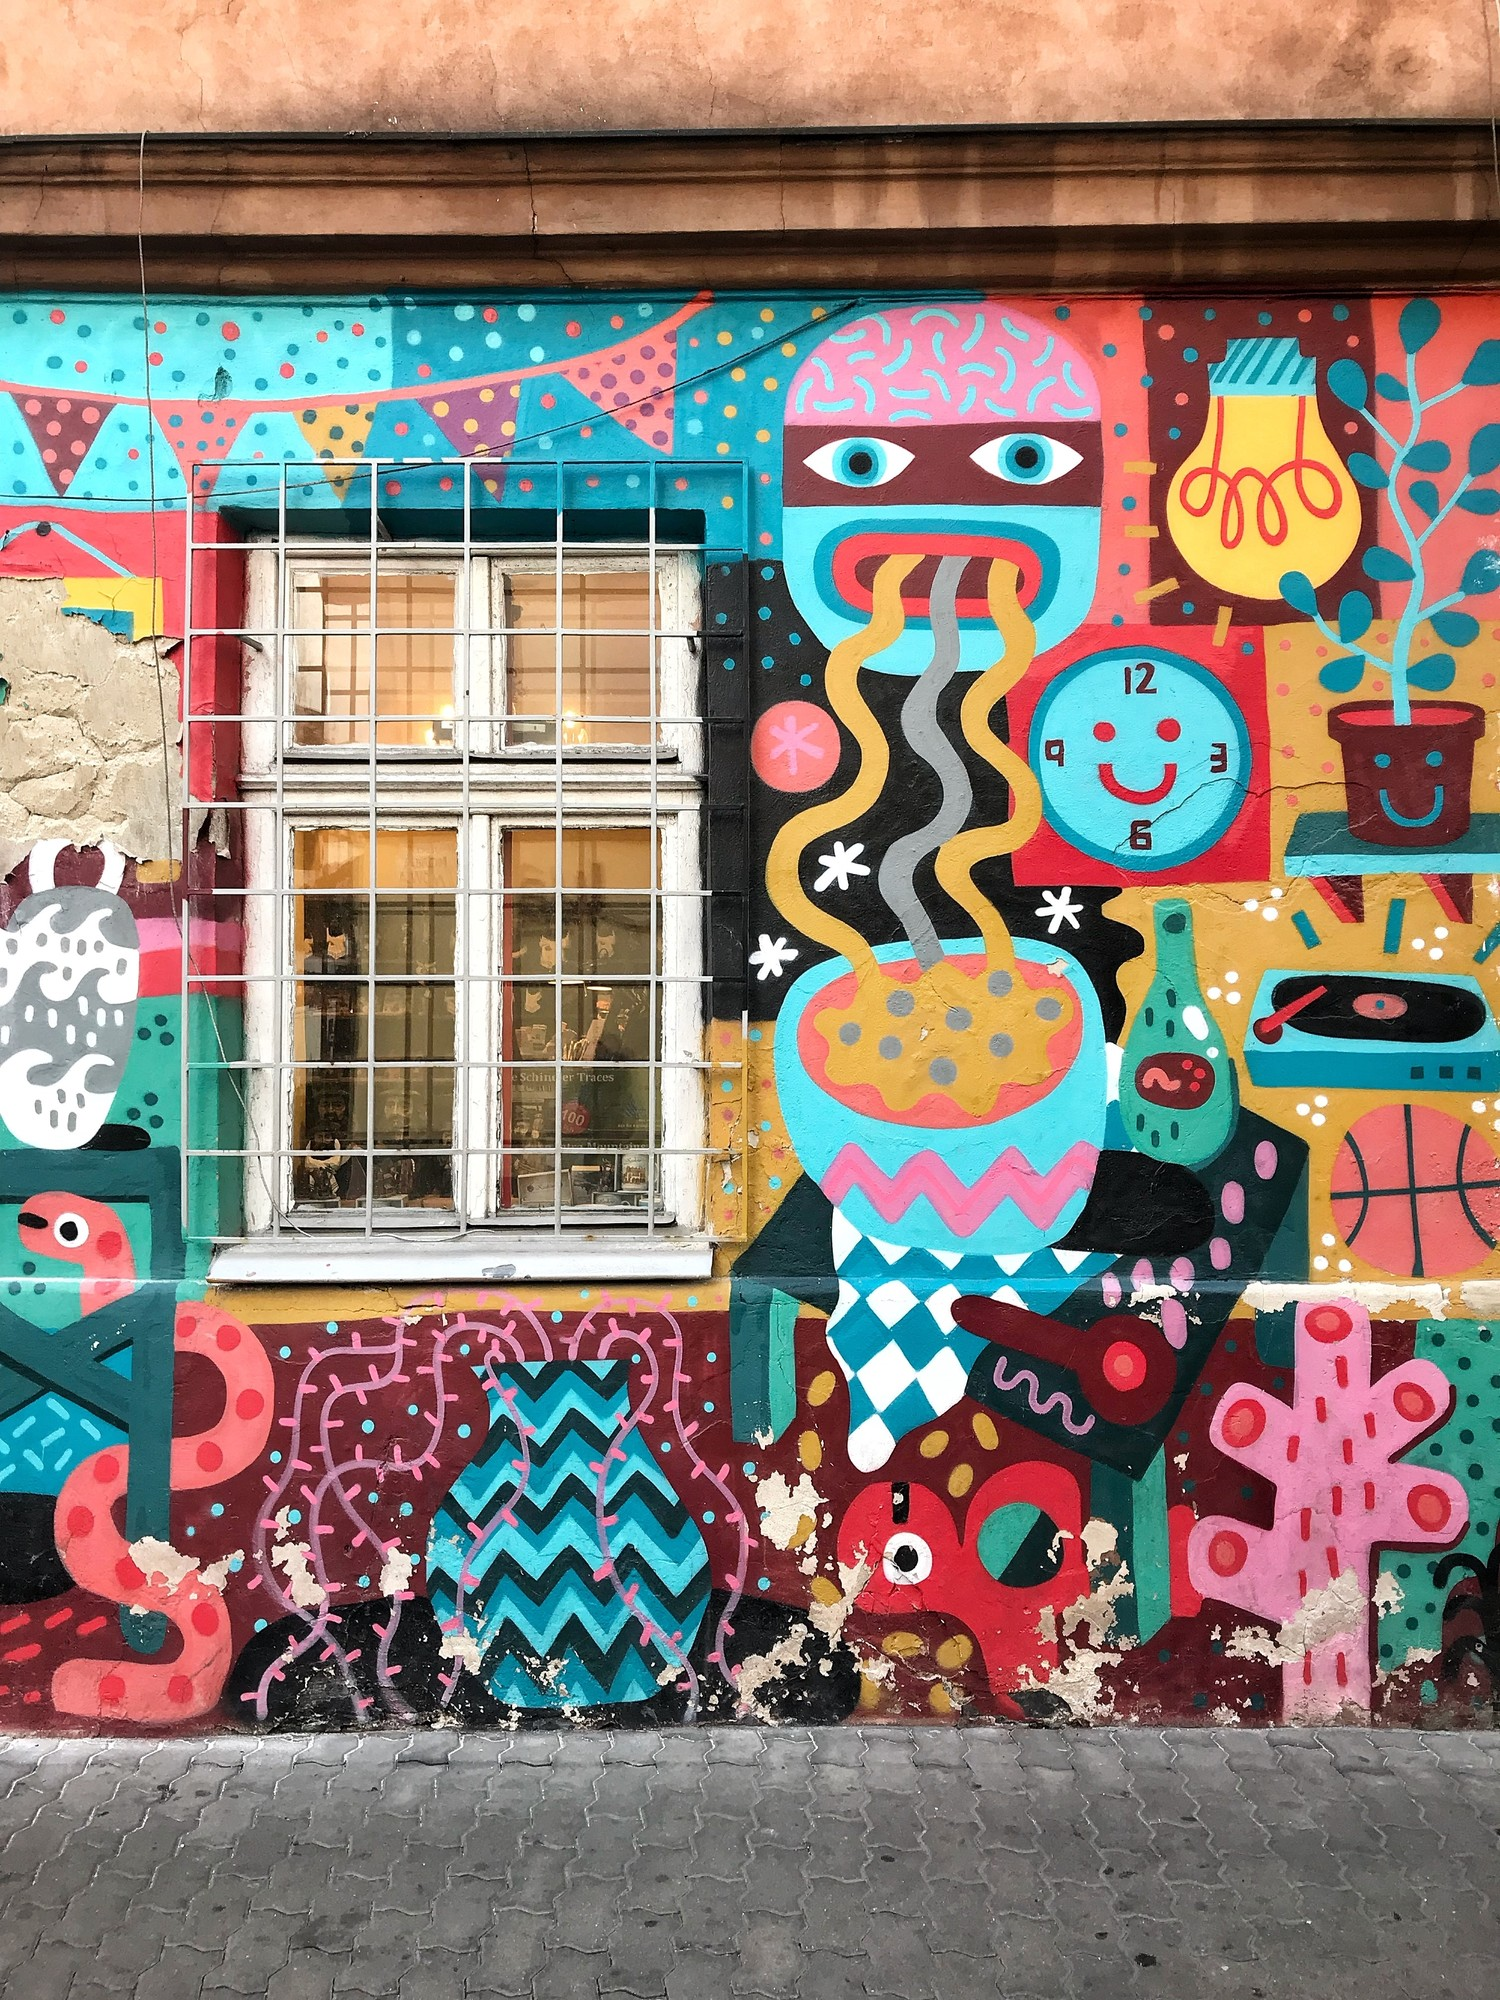 Krakow Street Art | Where to find murals and urban art in Cracow